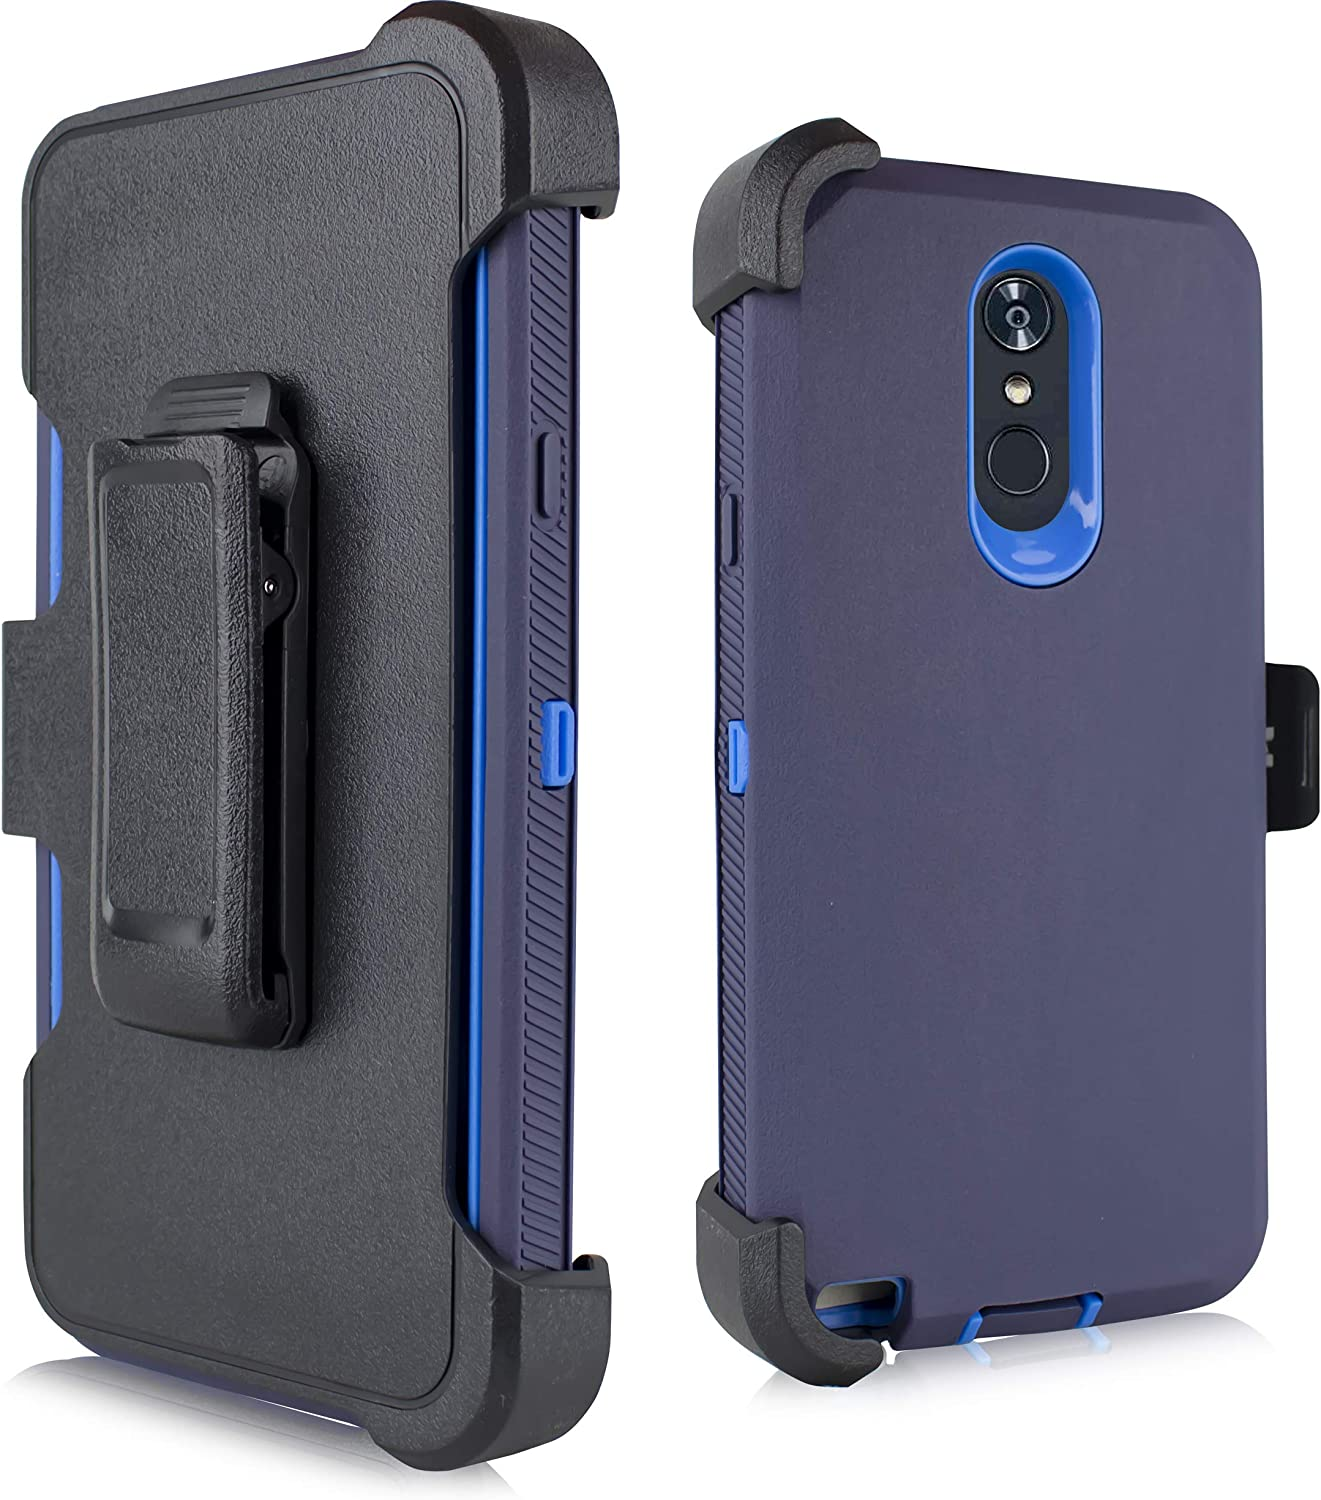 LG Stylo 4 Case, LG Q Stylo Case, Heavy Duty Armor Case, Belt Clip Holster w/ [Built-in Screen Protector] Shockproof Cover for LG Stylo 4 Plus/LG Stylus 4 (Navy)